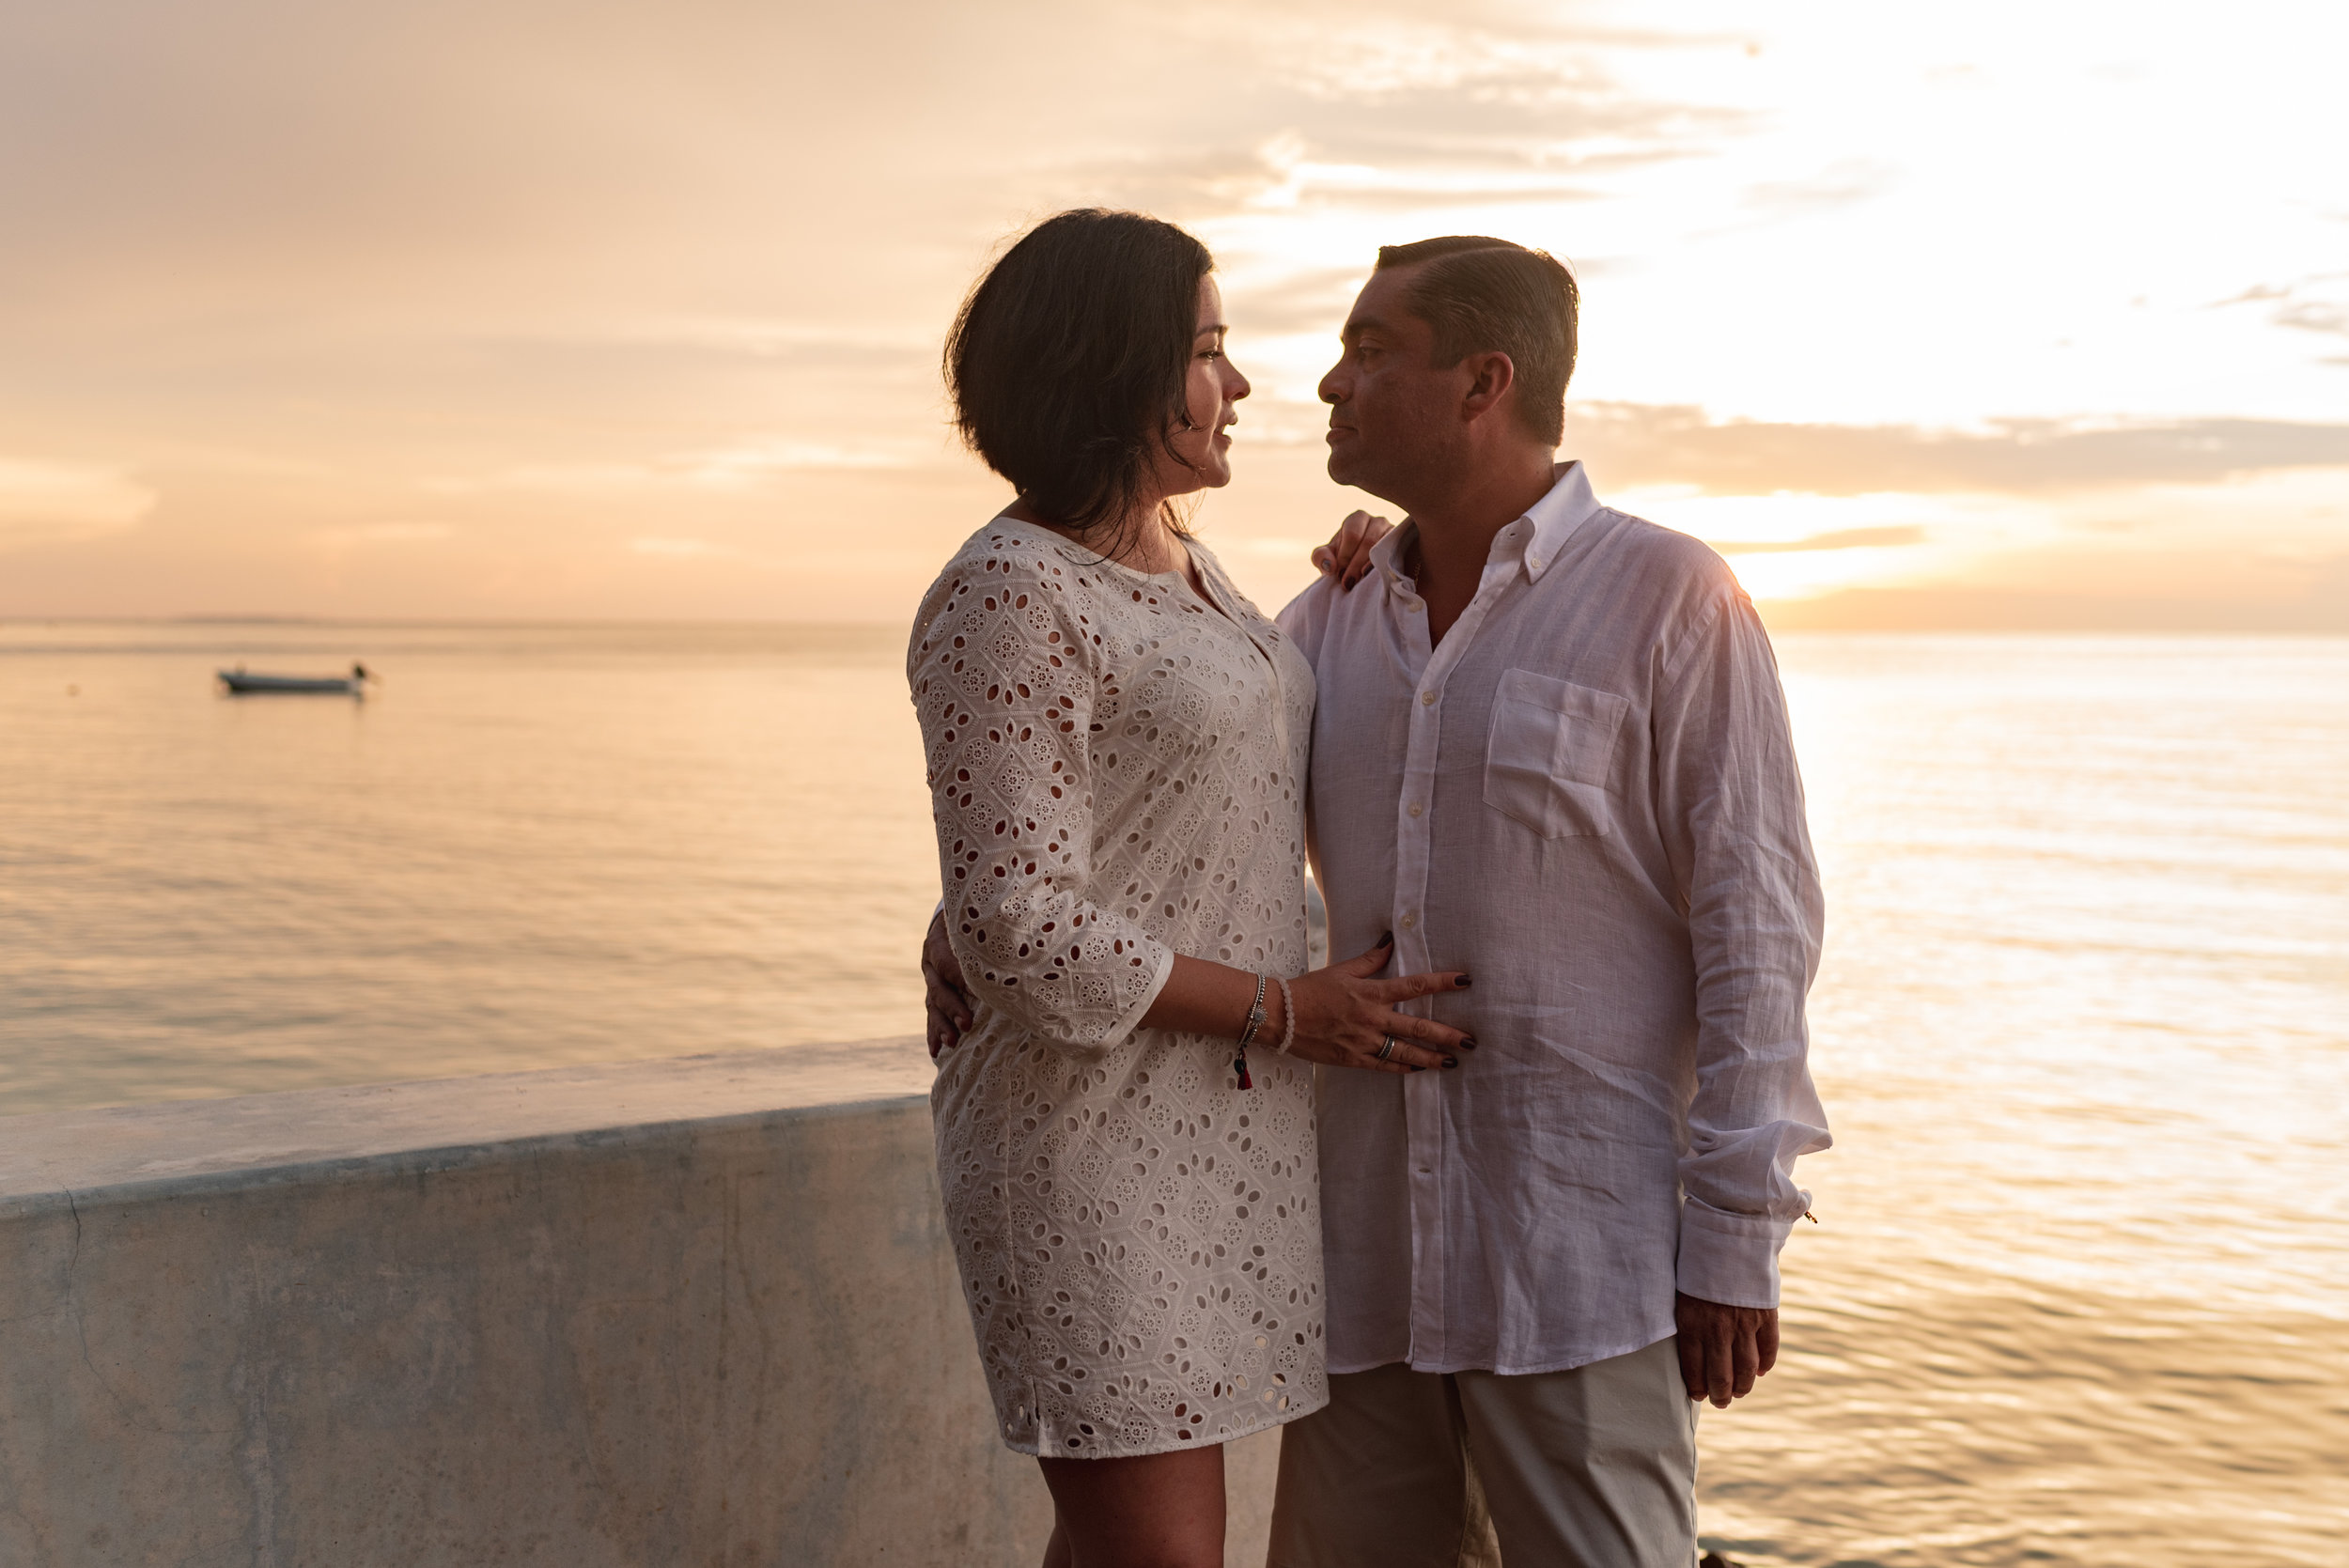 Holbox couples photoshoots f&f series 7 by @emmanuelphotoartist